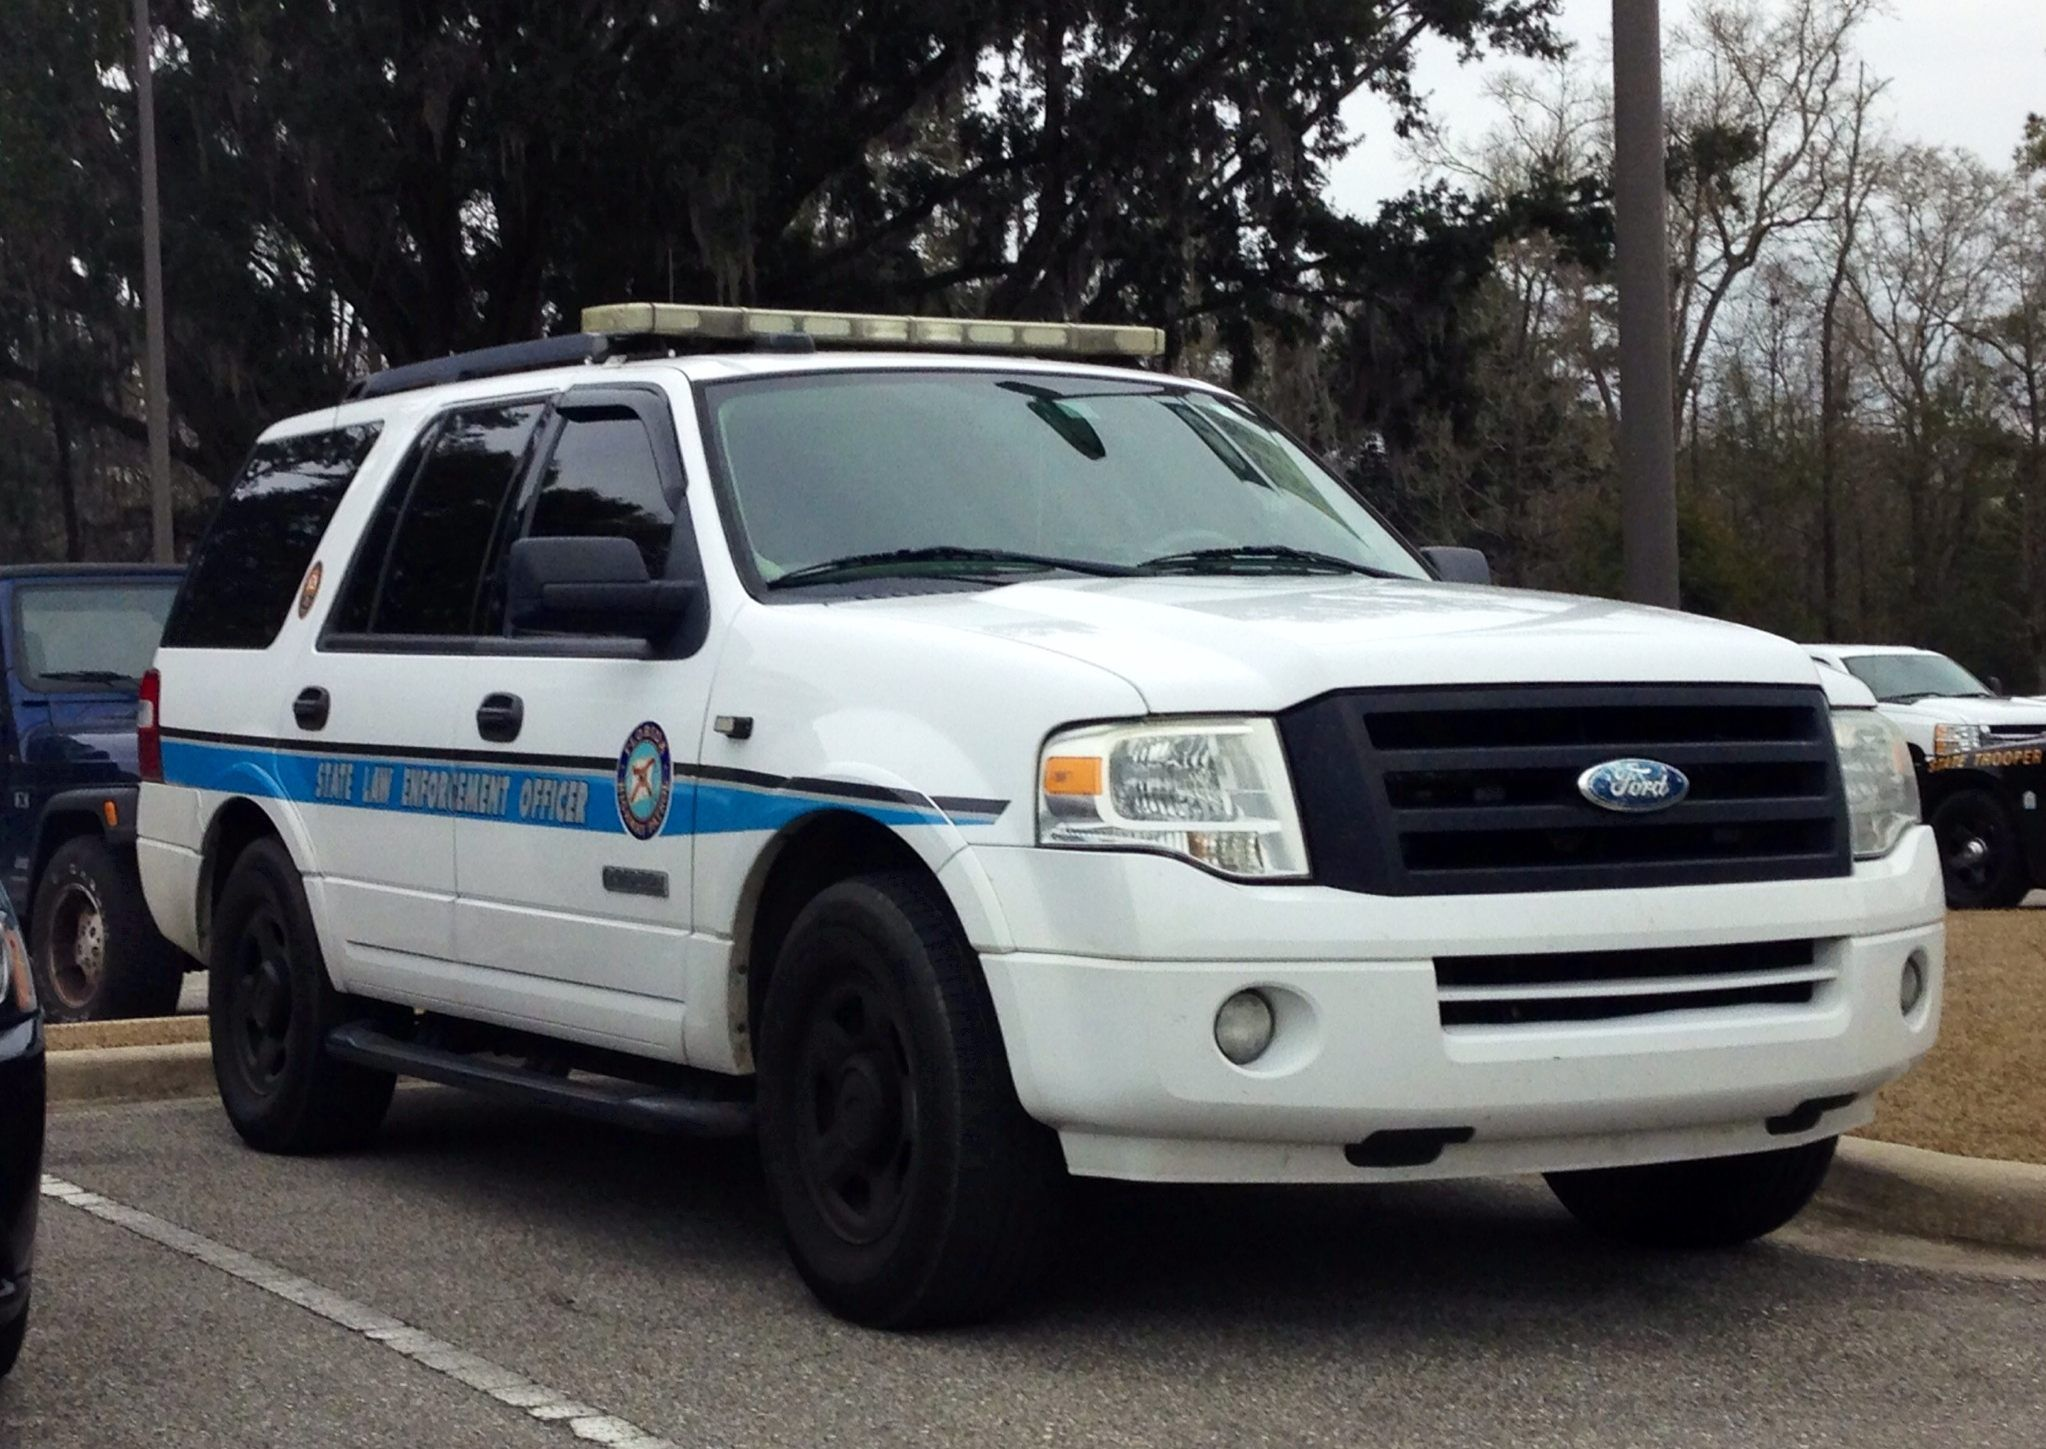 Fhp Motor Carrier Compliance Ford Expedition Ford Suv Ford